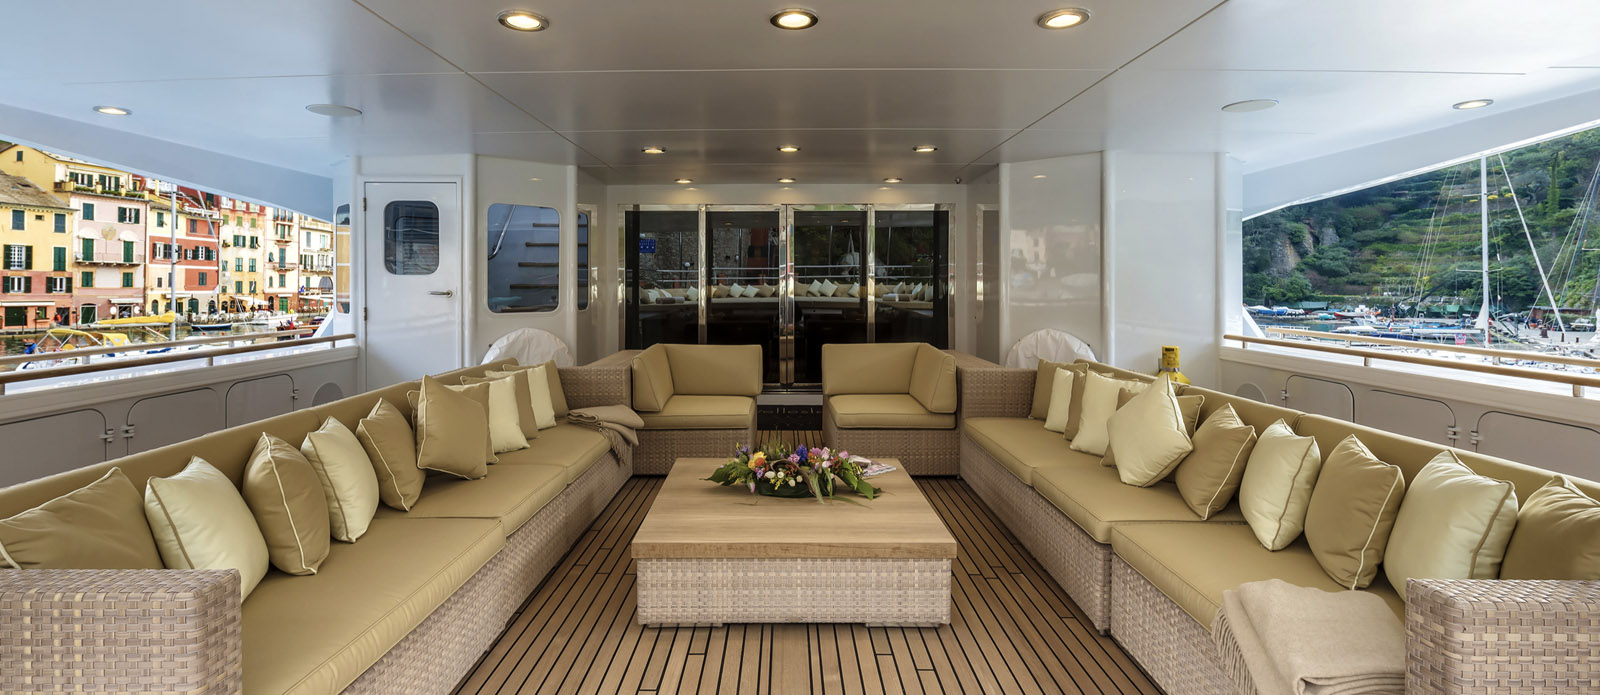 The-Wellesley-Oceanco-Exterior-Seating